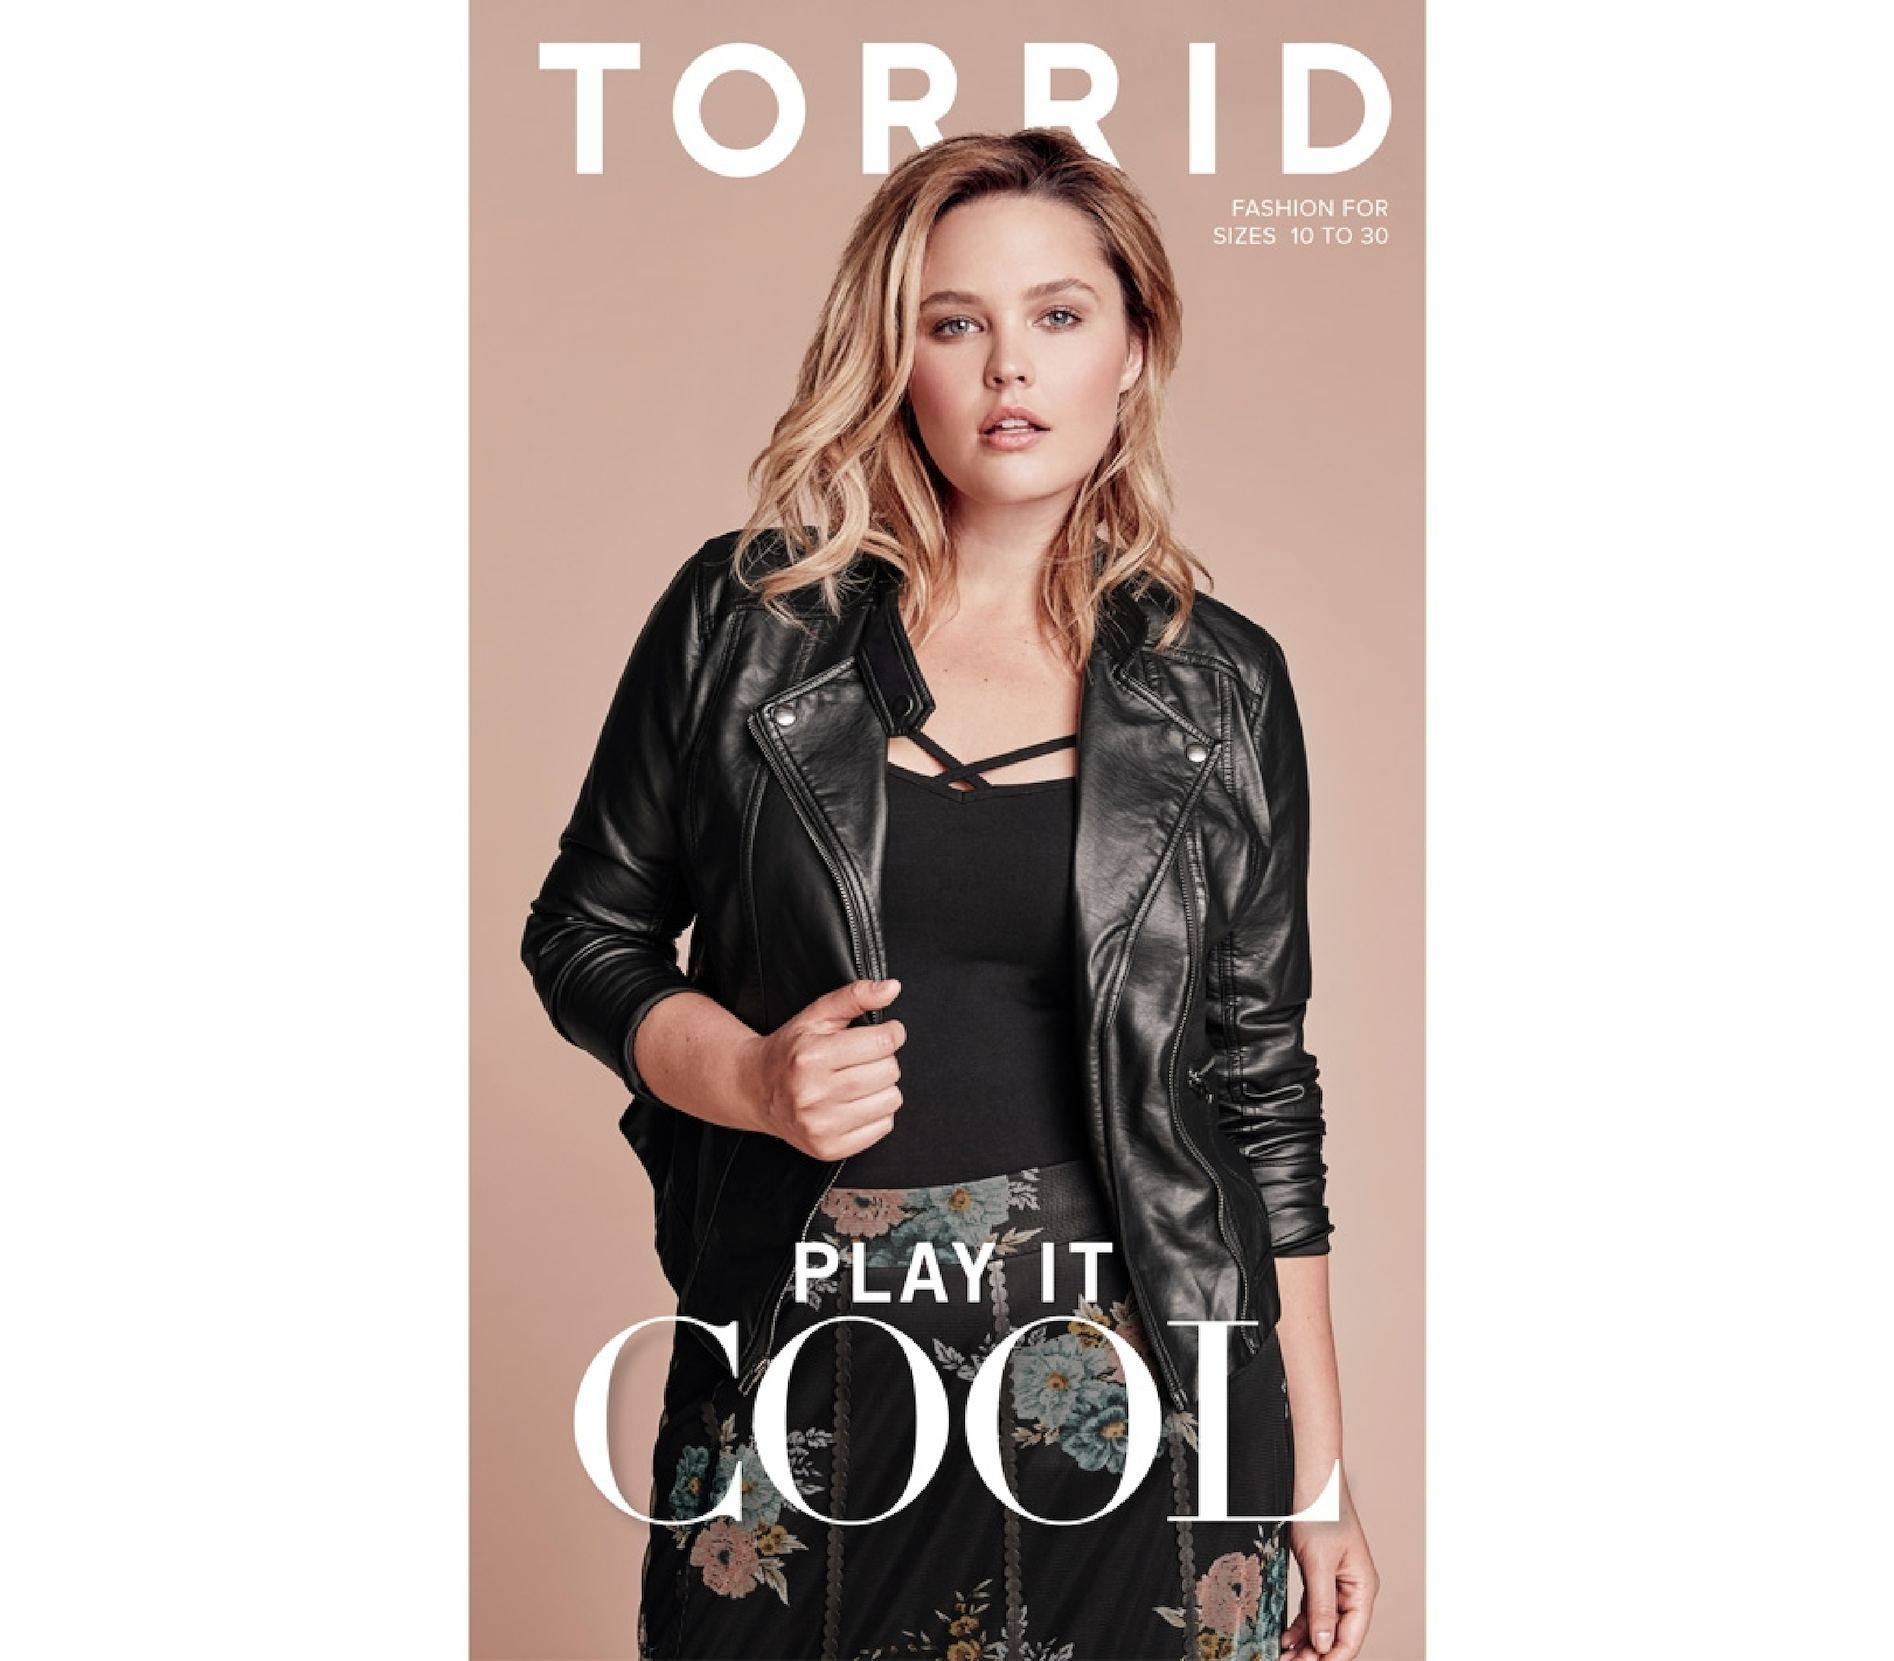 Torrid Play It Cool Fall 2016